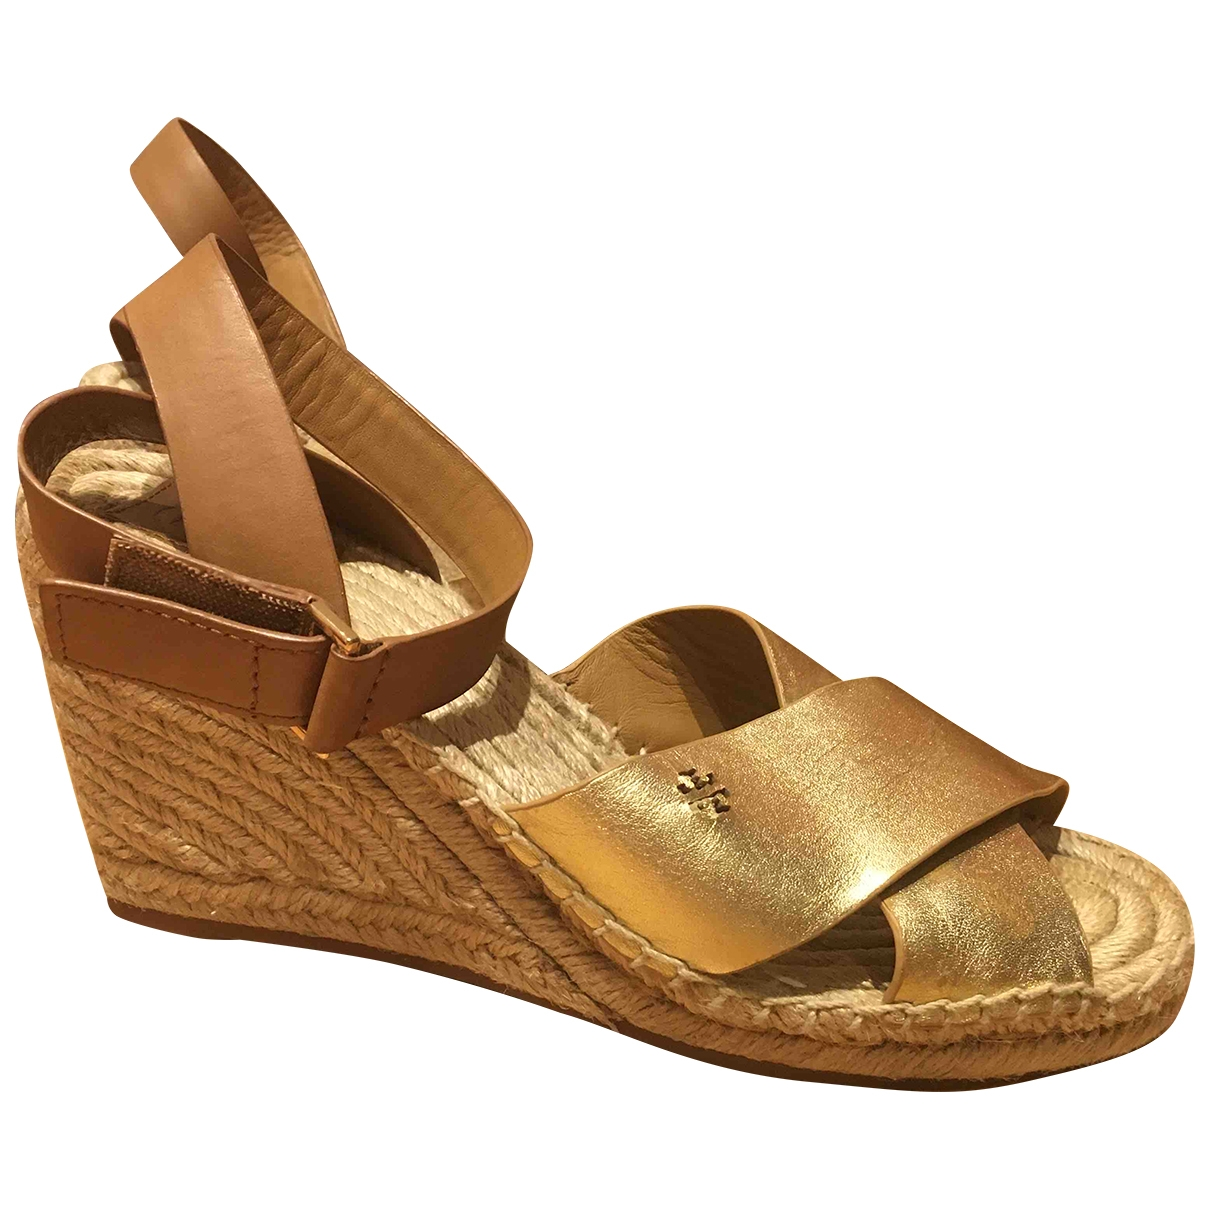 Tory Burch \N Gold Leather Sandals for Women 8 US